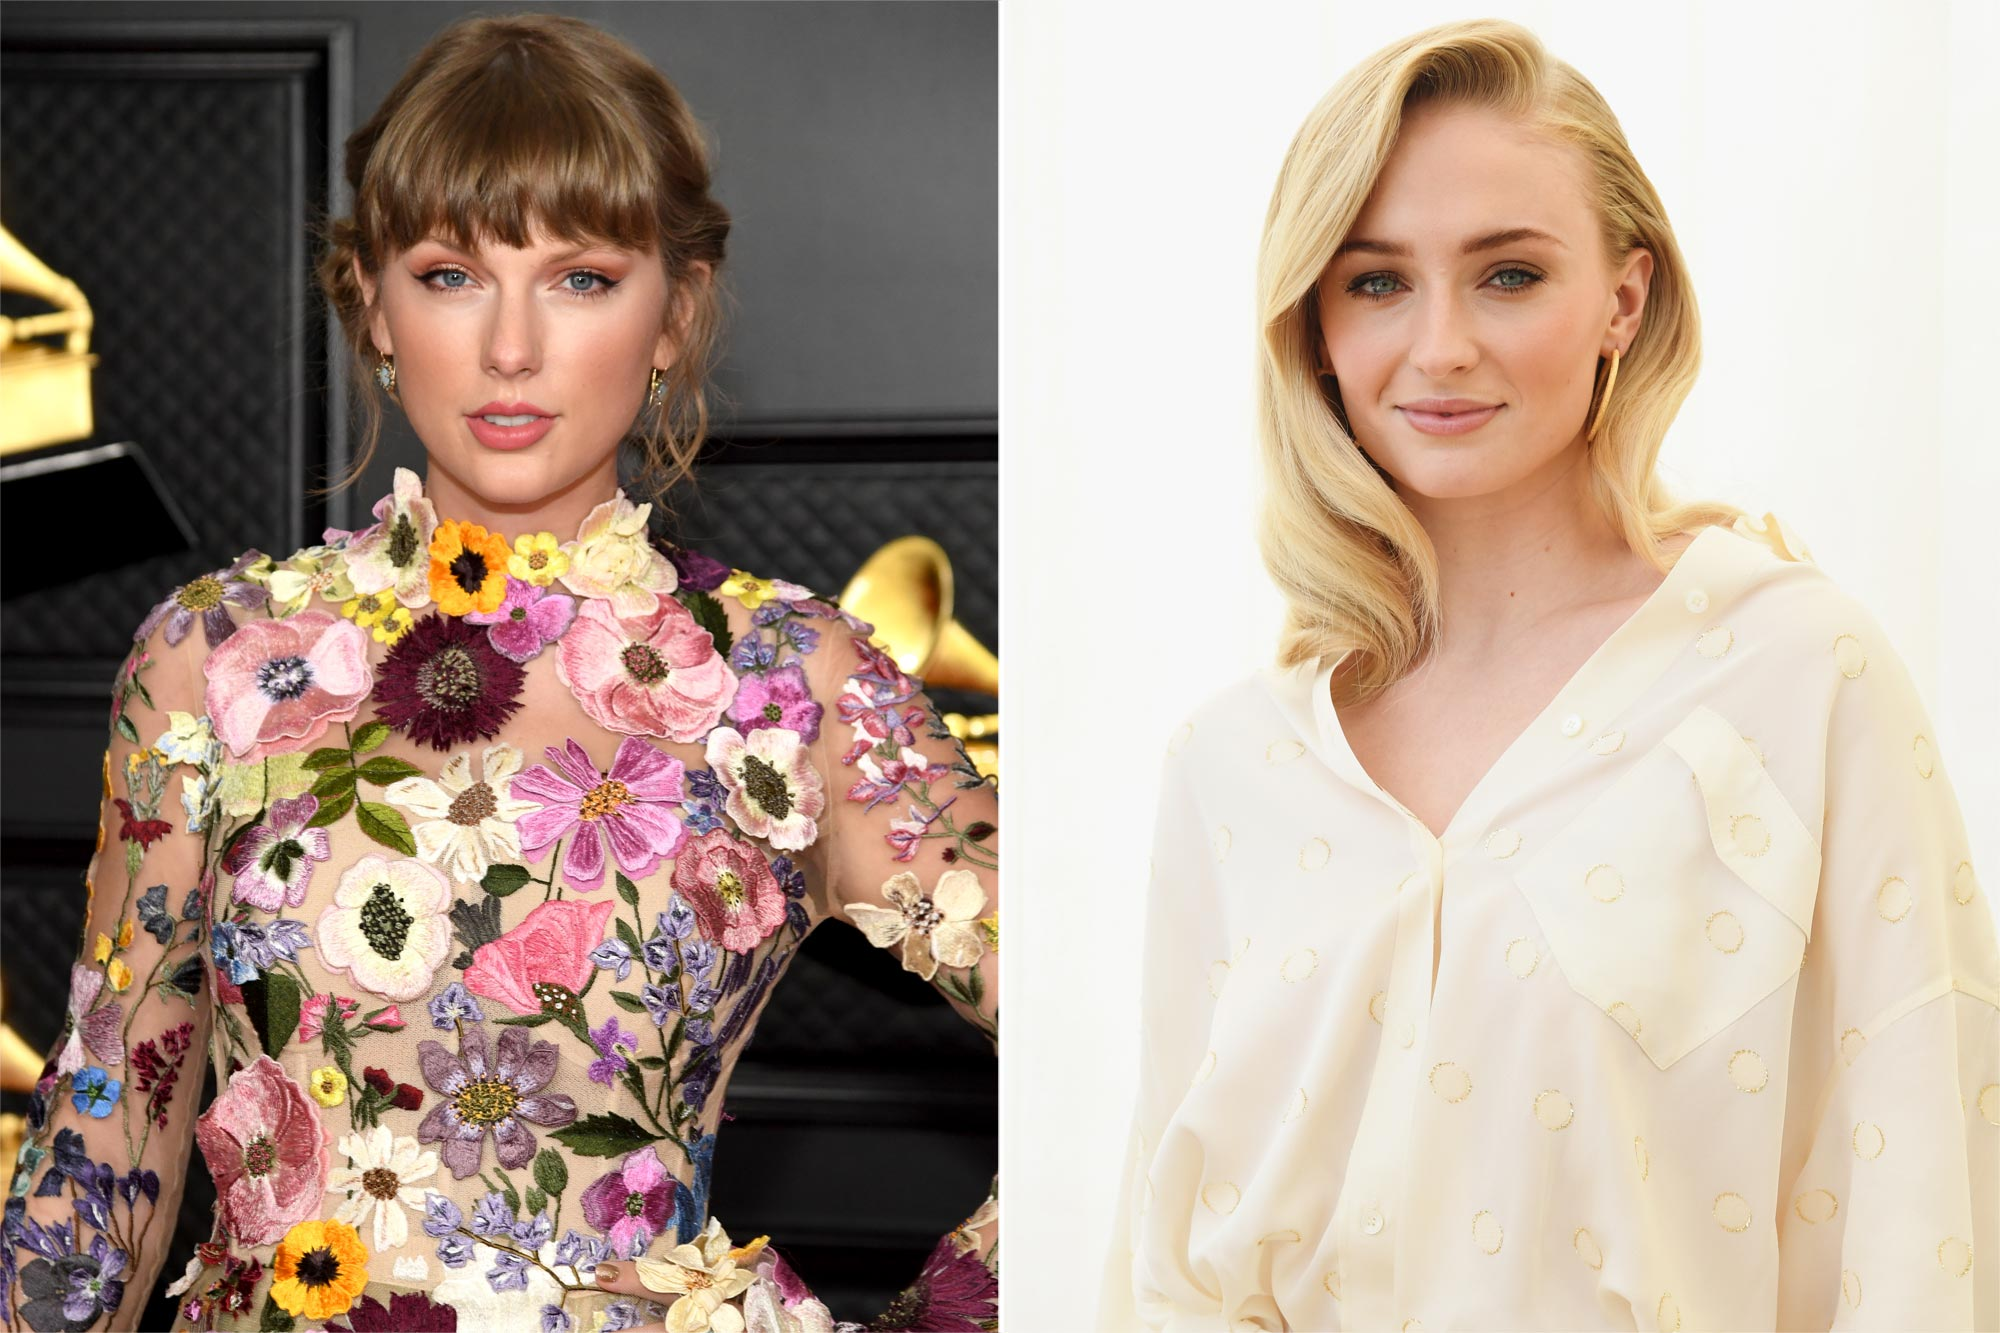 Taylor Swift and Sophie Turner